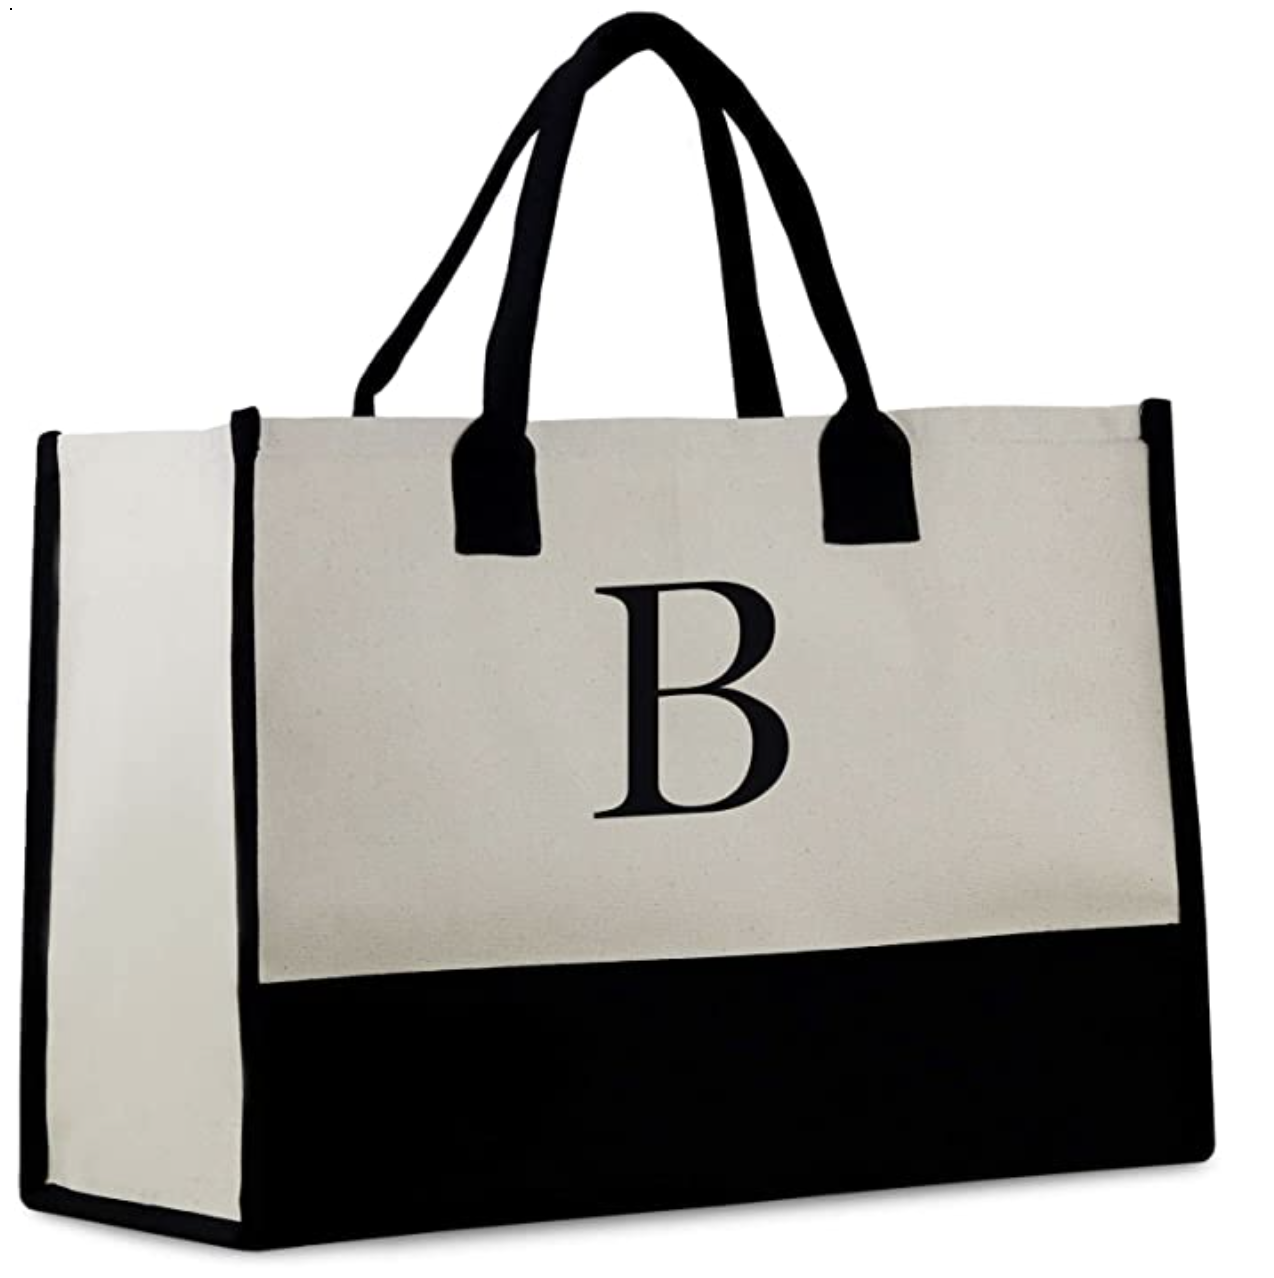 maid-of-honor-gifts-tote-bag